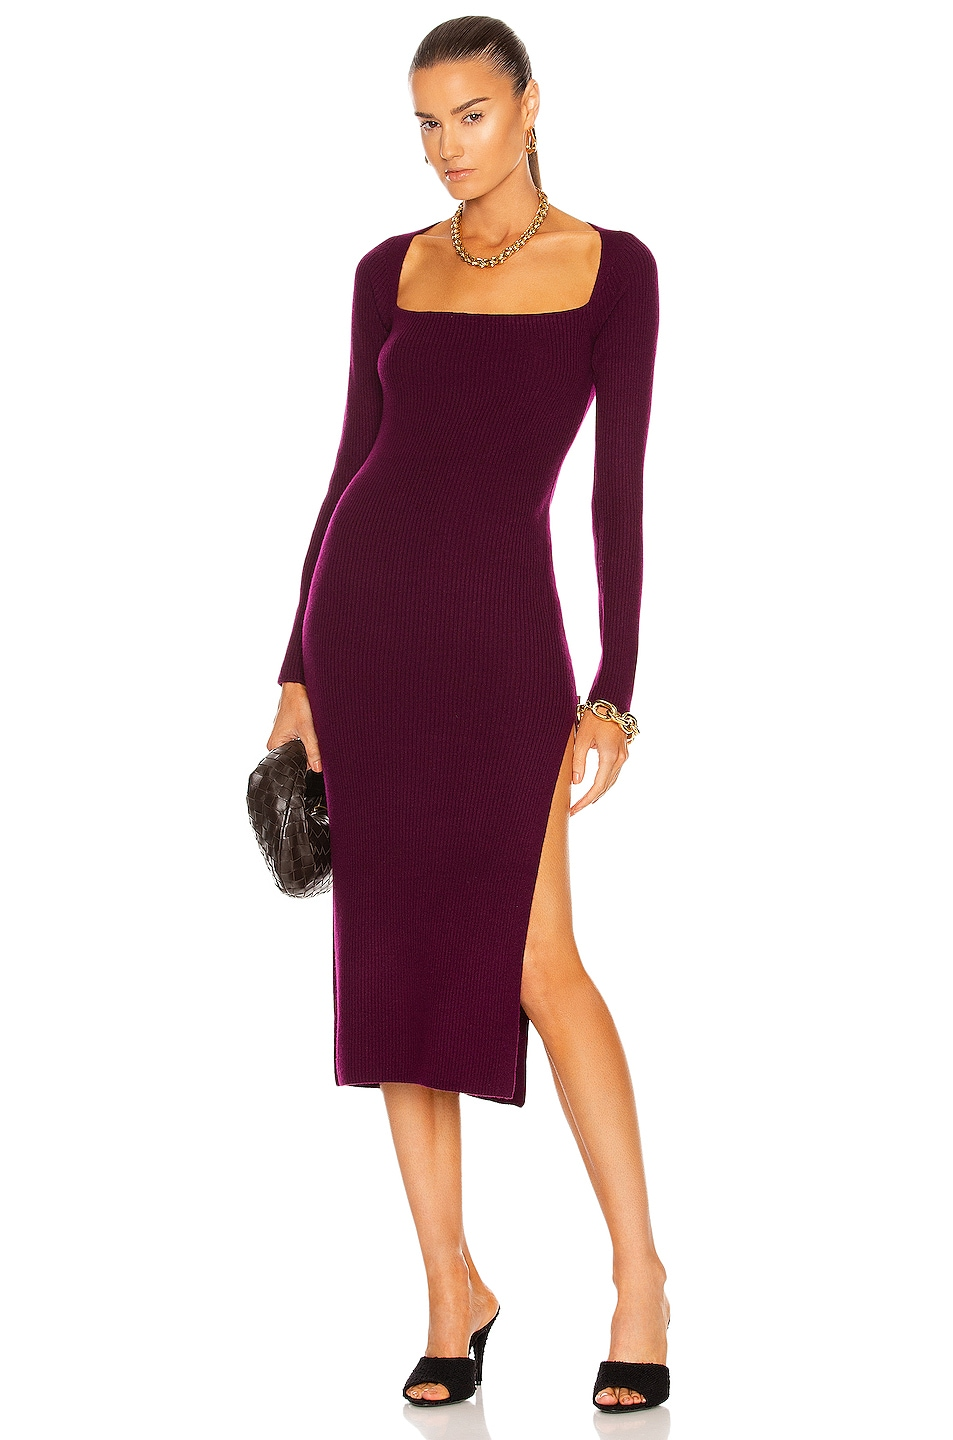 Image 1 of The Sei Square Neck Dress With Slit in Plum